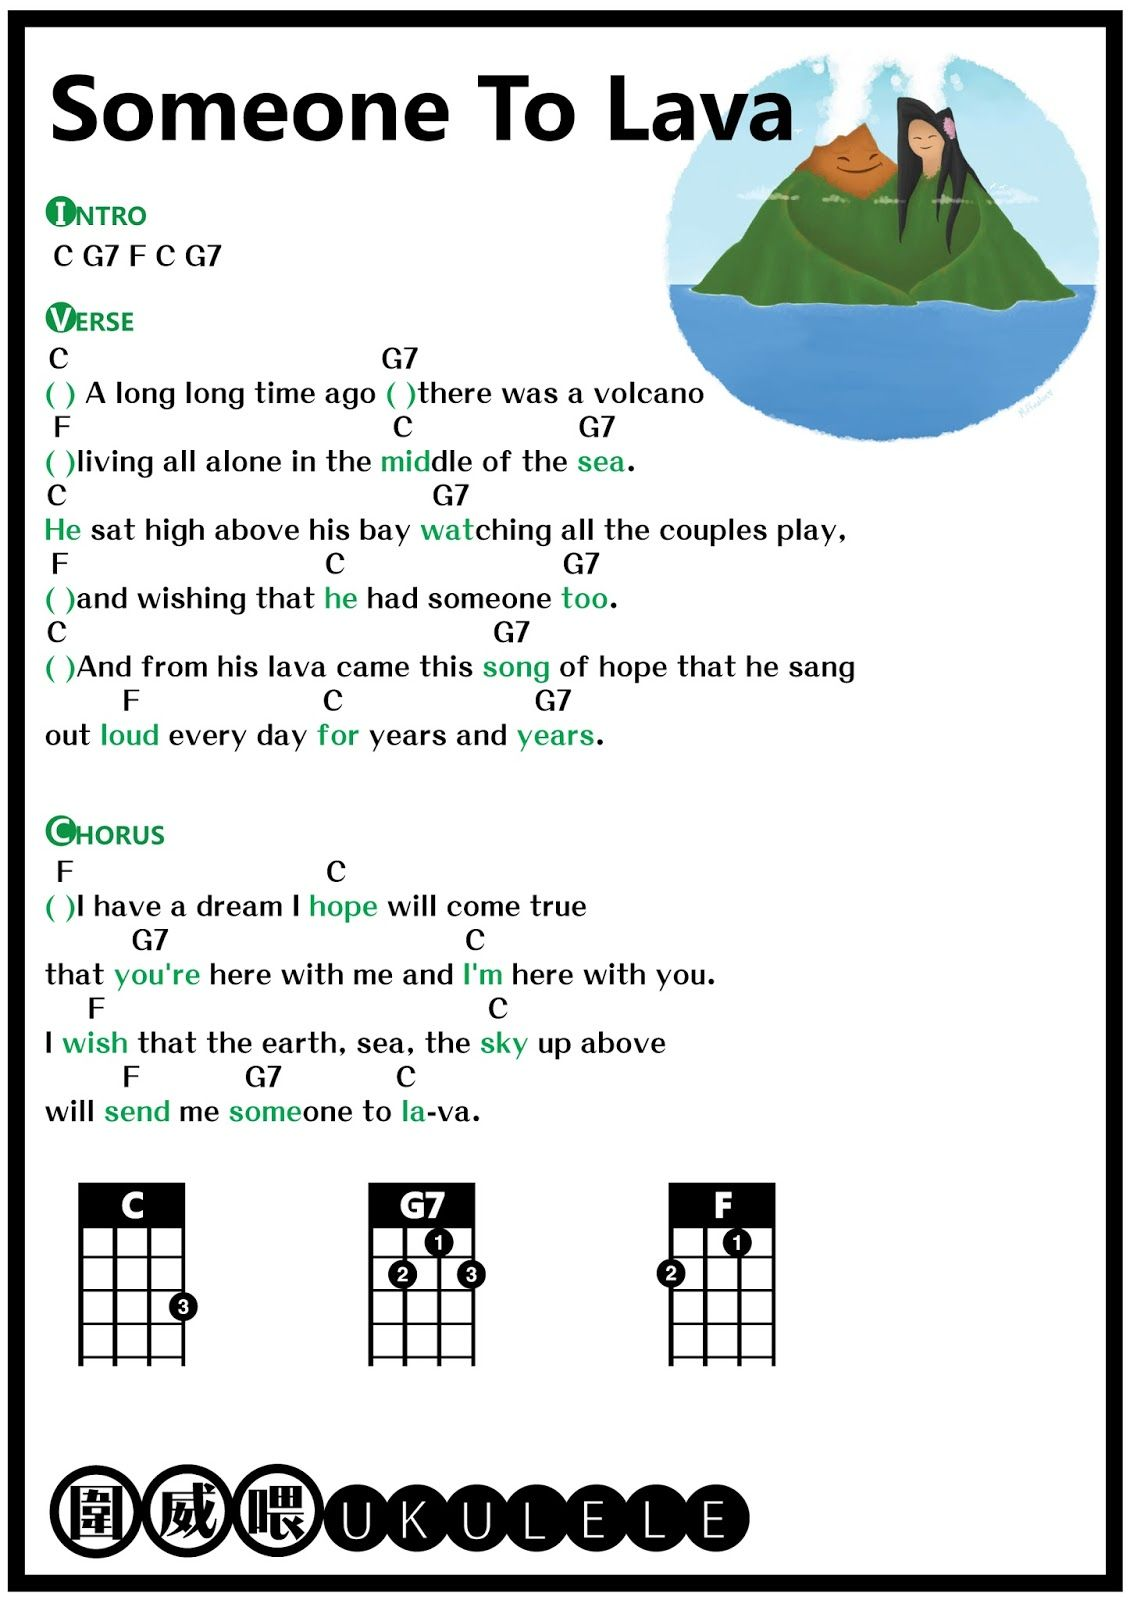 ukulele someone to lava ukulele tab musiceducation guitar chords hexwebz Images